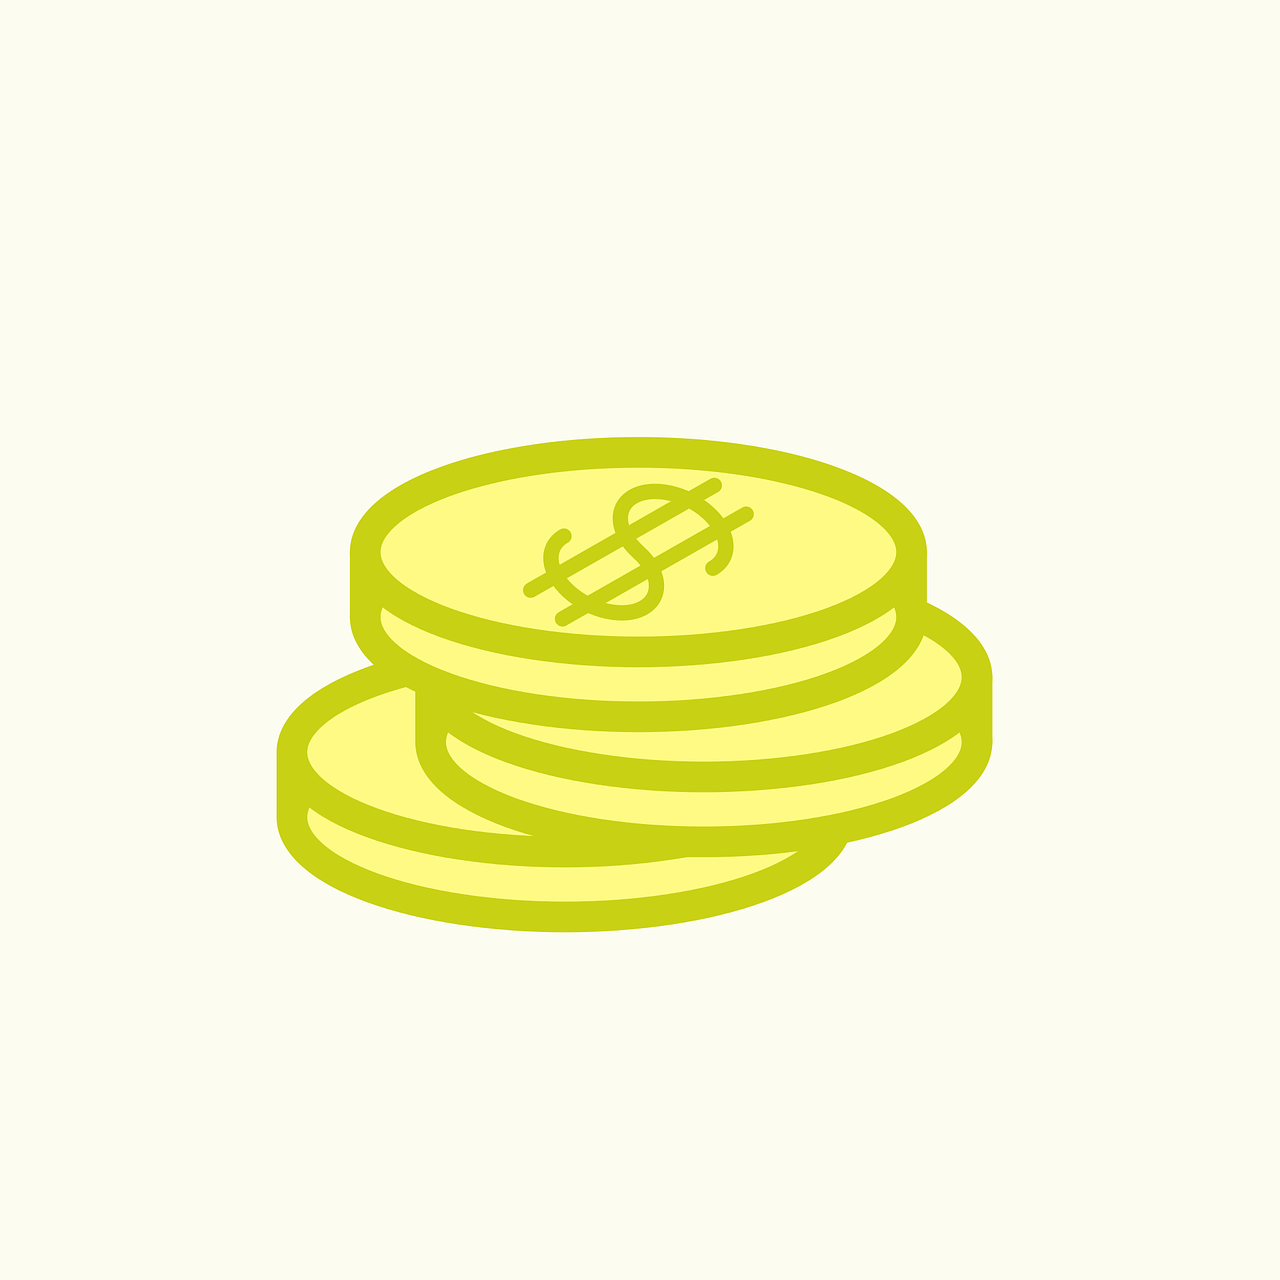 coins-3344603_1280.png